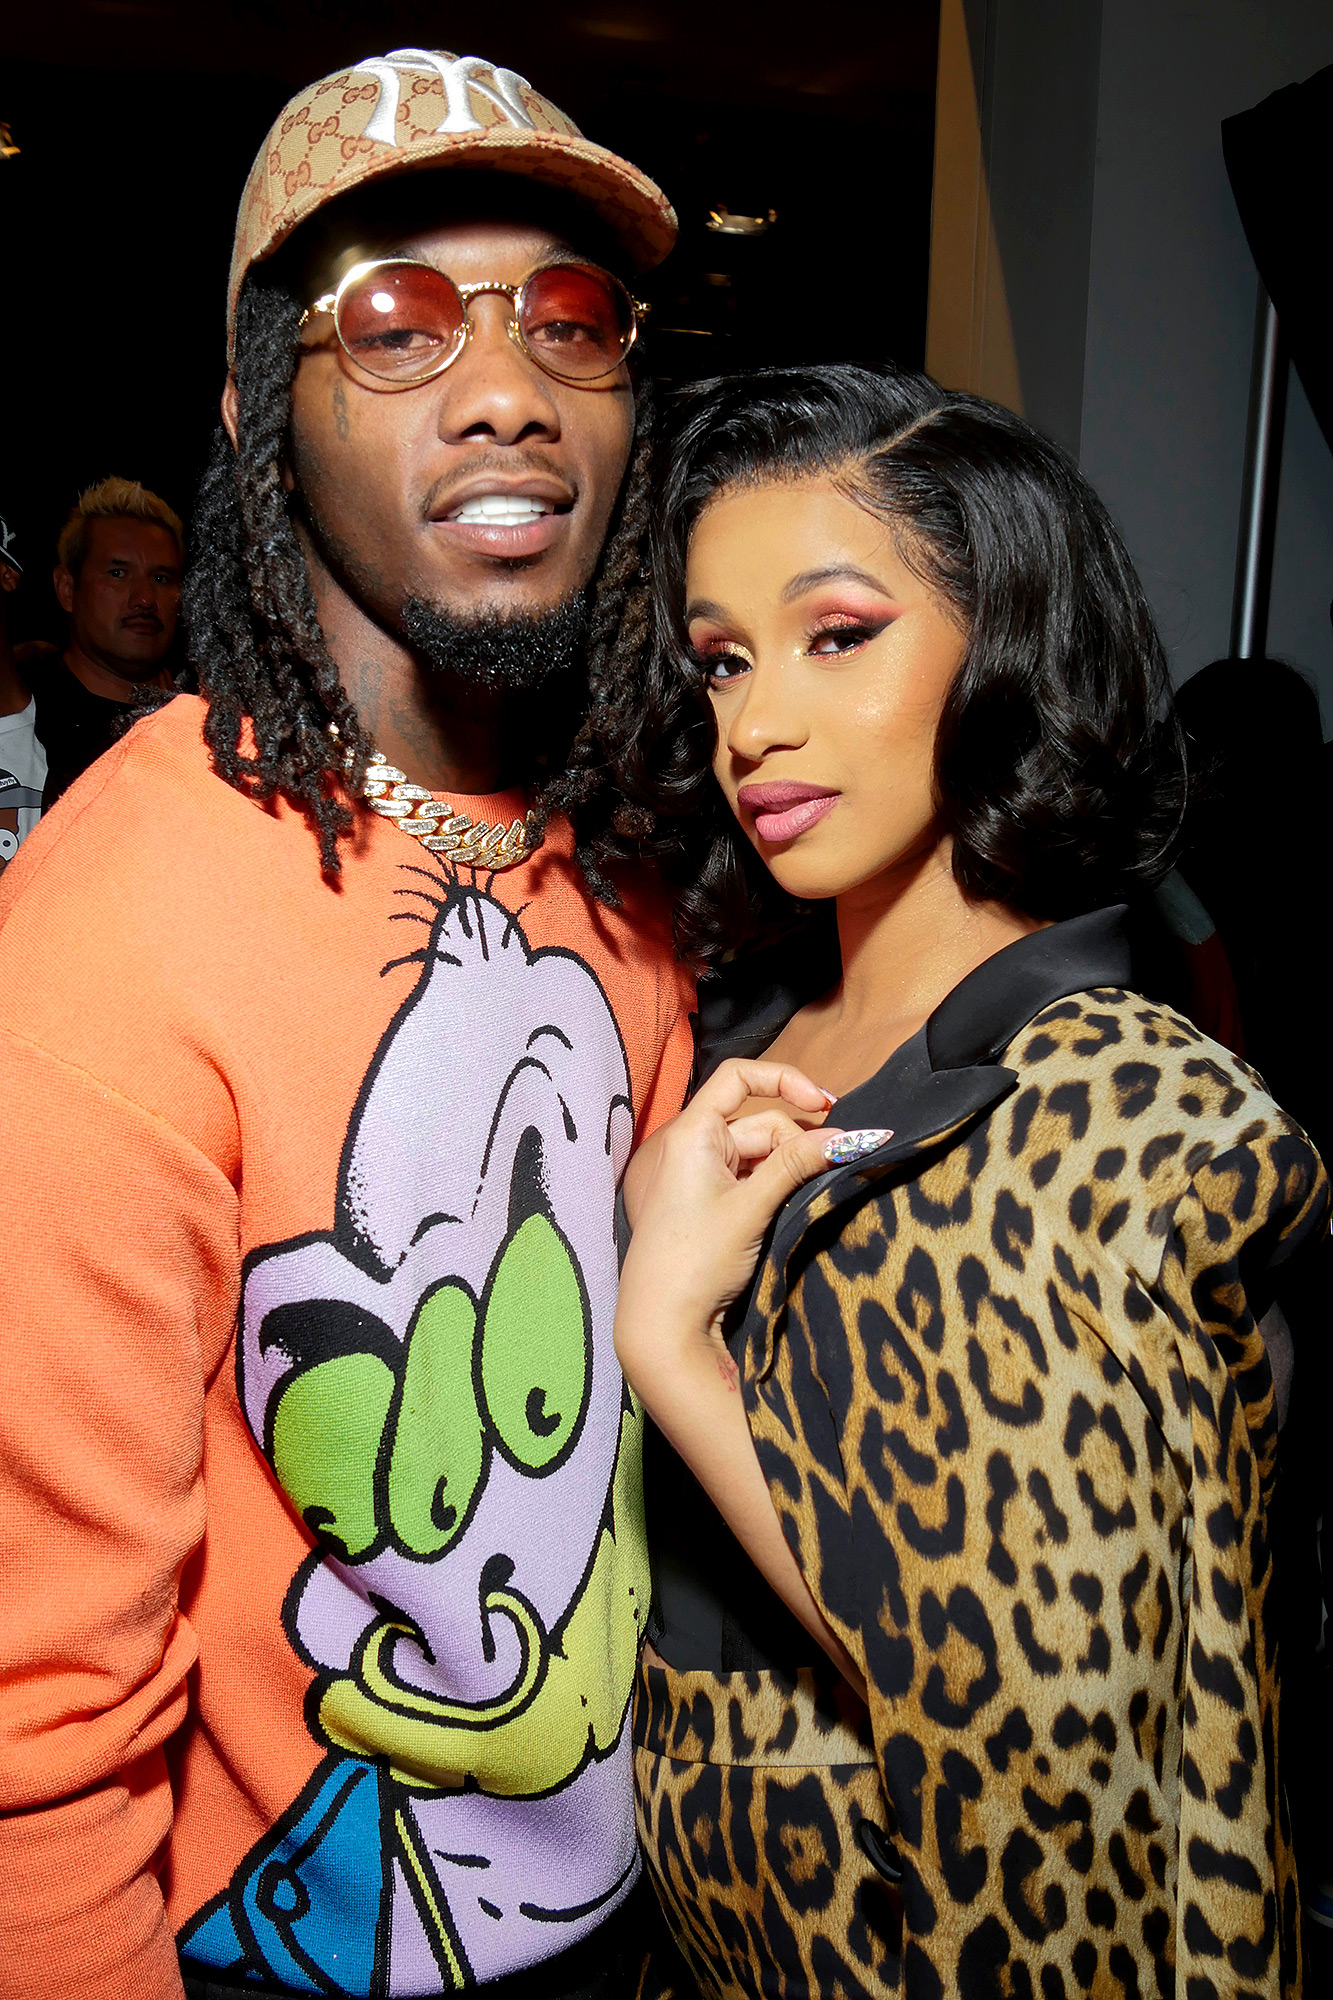 Offset Spoils Ex Cardi B on Christmas with 4 Hermès Birkin Bags, 8 Pairs of Christian Louboutin Heels